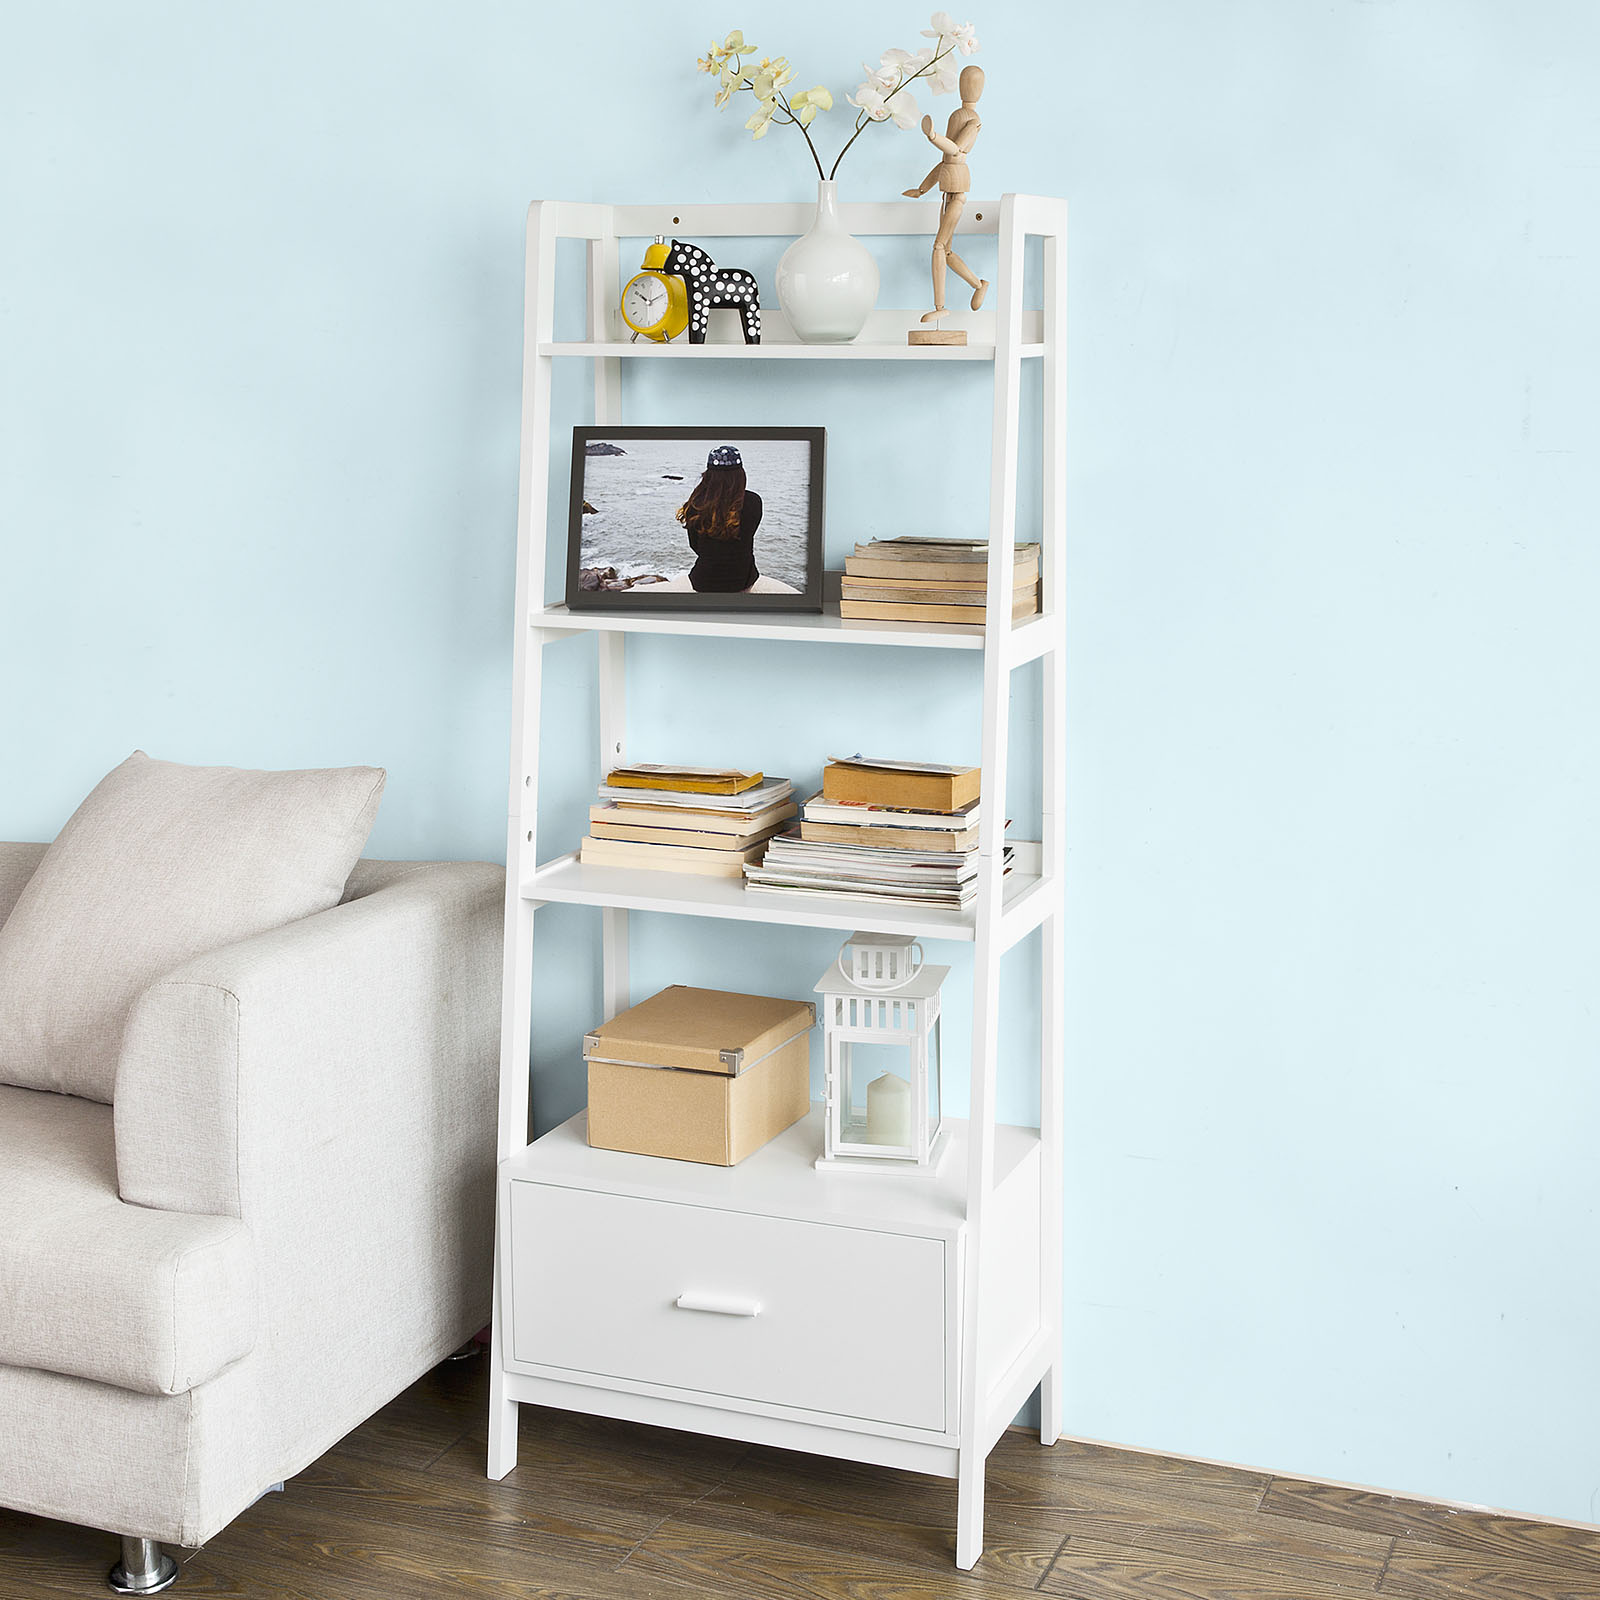 Haotian FRG116-W, White, Storage Display Shelving Ladder Shelf Bookcase with Drawer and 4 Shelves